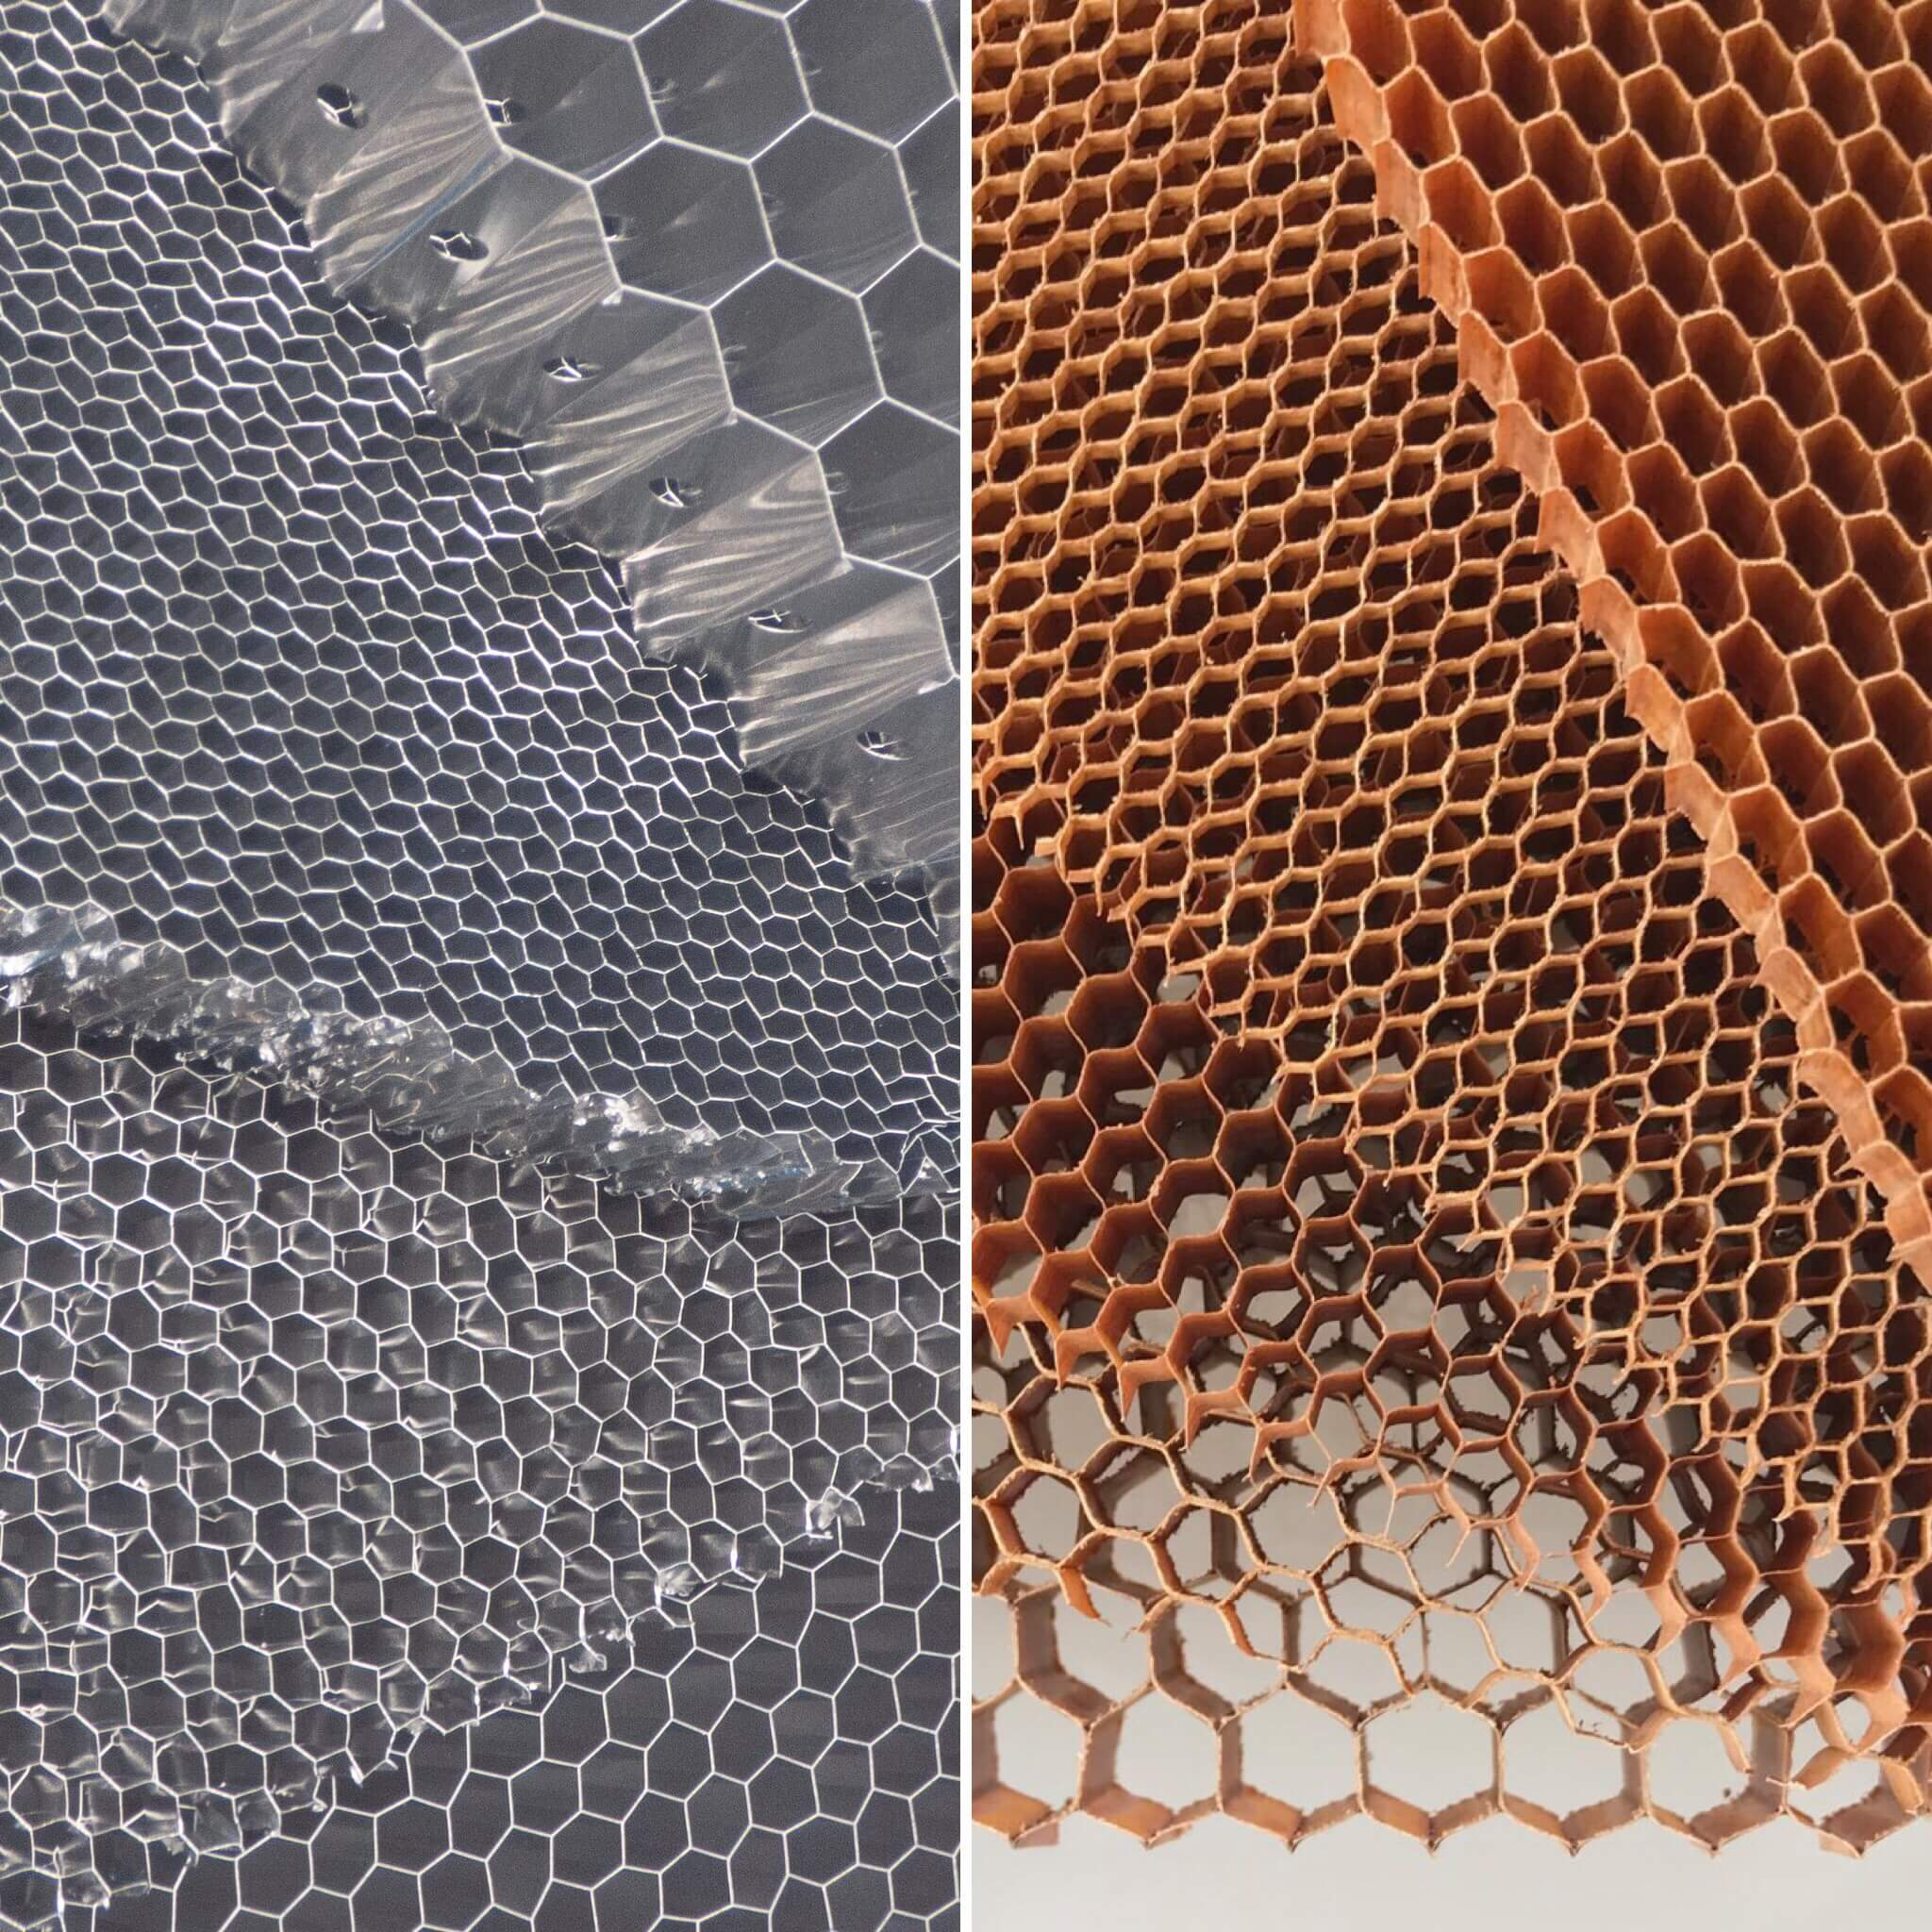 Aluminium honeycomb vs Nomex